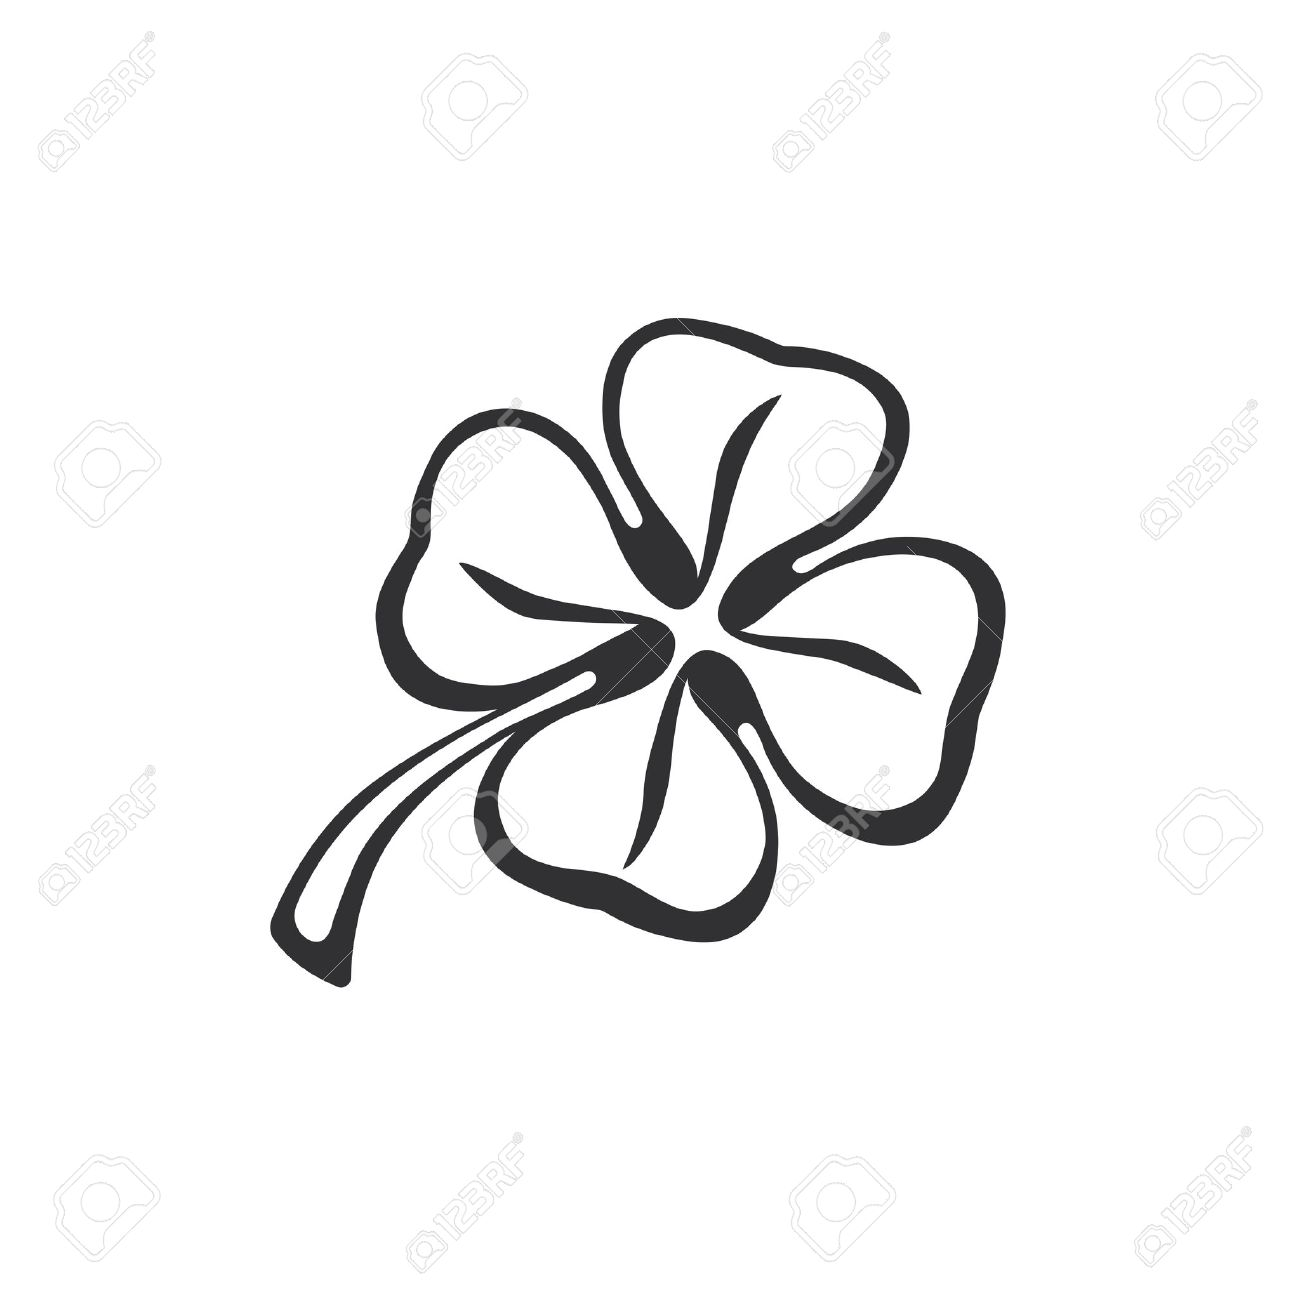 doodle of four leaf clover hand drawing doodle lucky quatrefoil